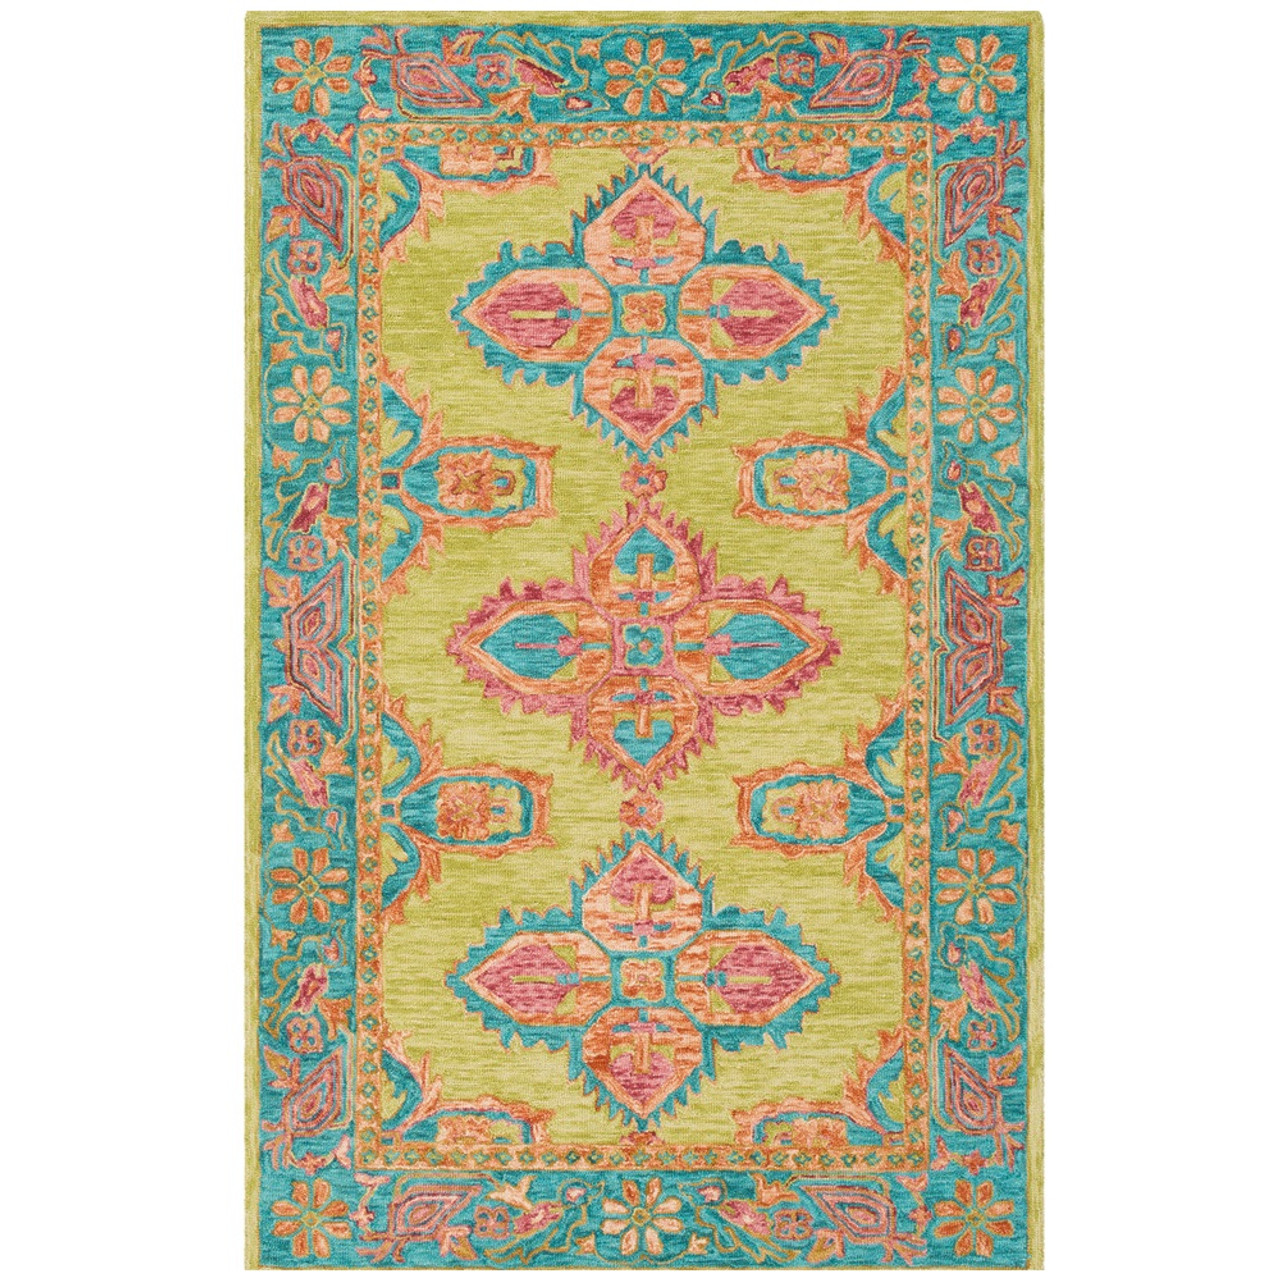 Picture of: 2 X 3 Blue Green Floral Pattern Rectangular Hand Hooked Area Rugs Christmas Central